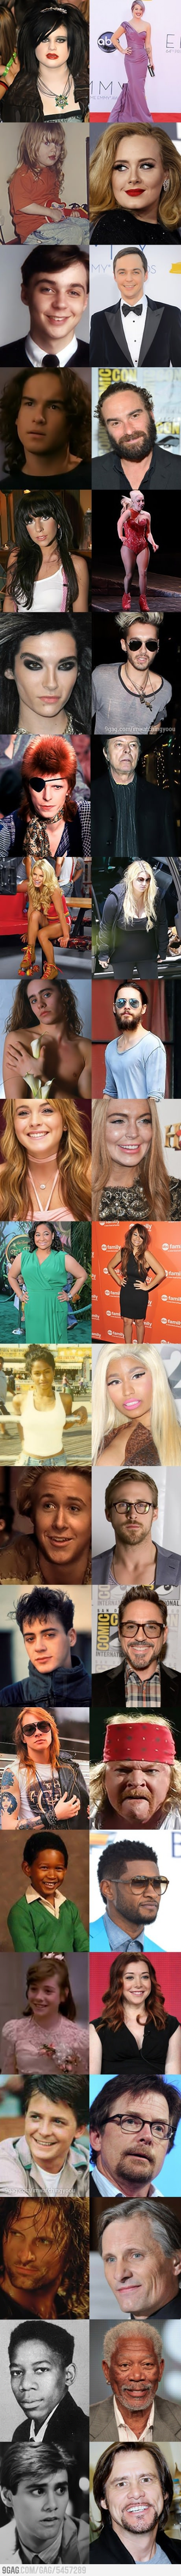 This is how the celebrities change over time